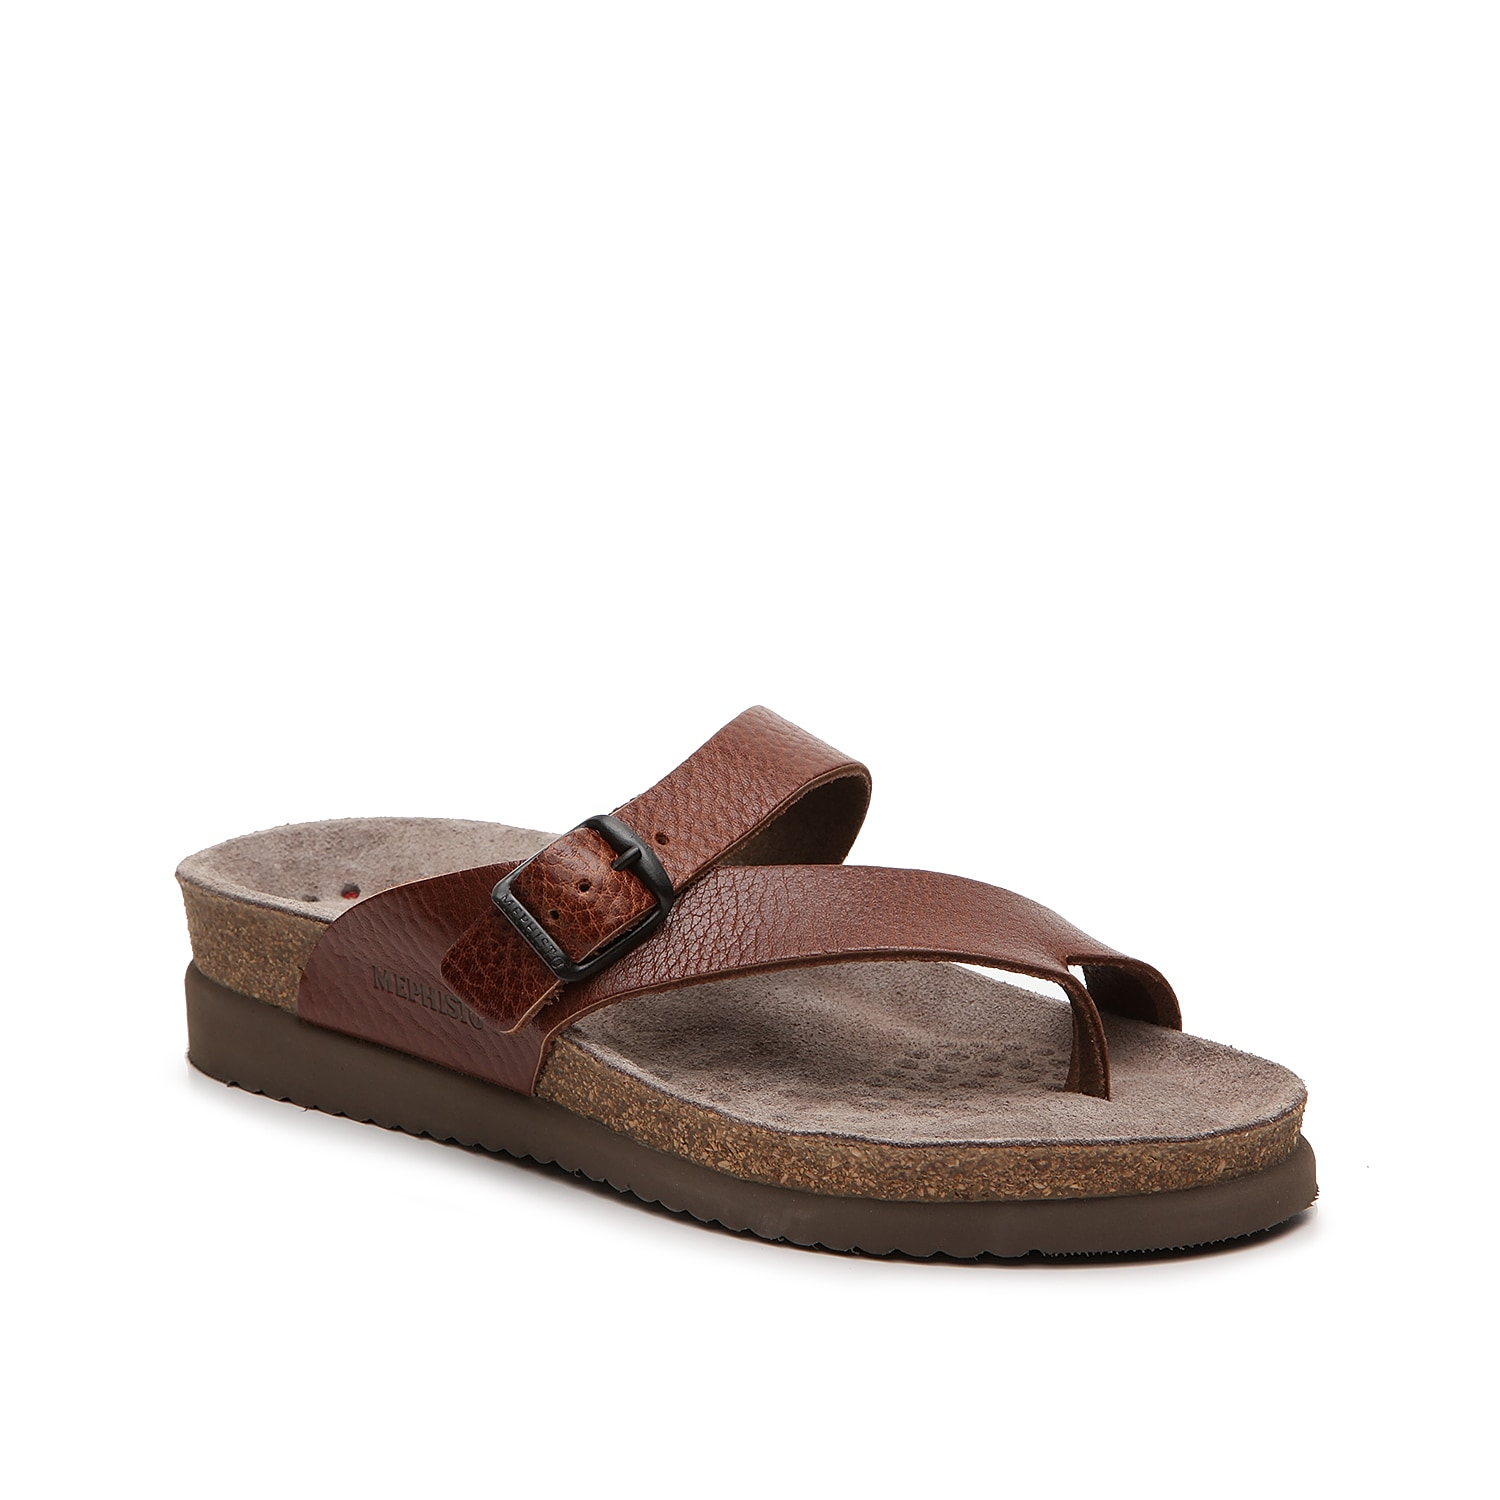 Feel fashionably carefree in the Helen sandal from Mephisto. These supportive slip-ons feature a smooth leather finish and cork wedge for extra texture.